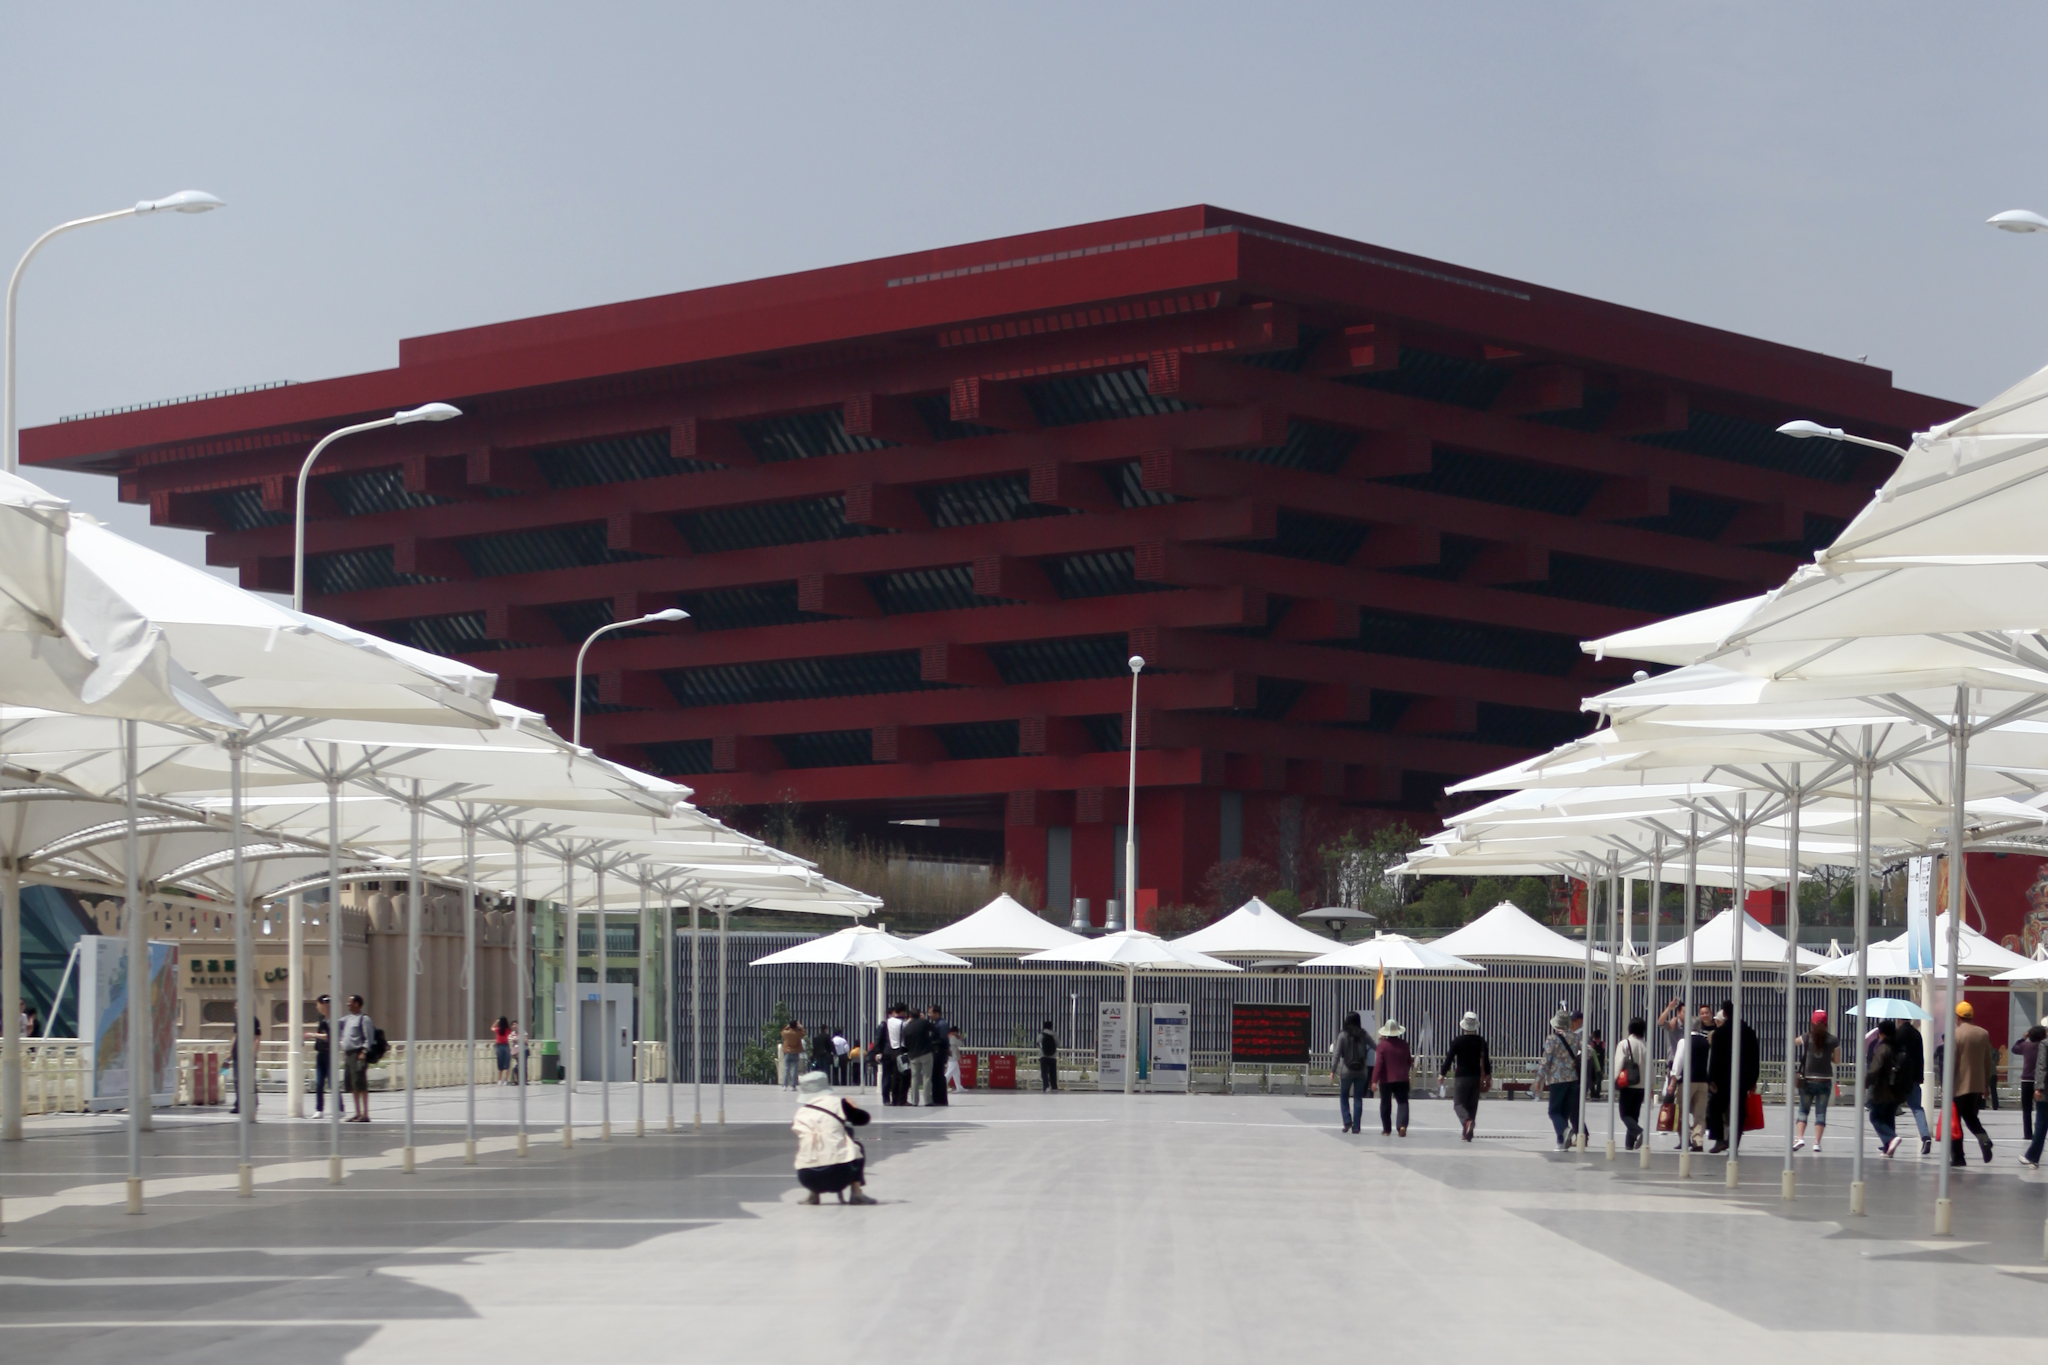 File:China\u0027s Pavillion at the 2010 World Expo in Shanghai.jpg ...